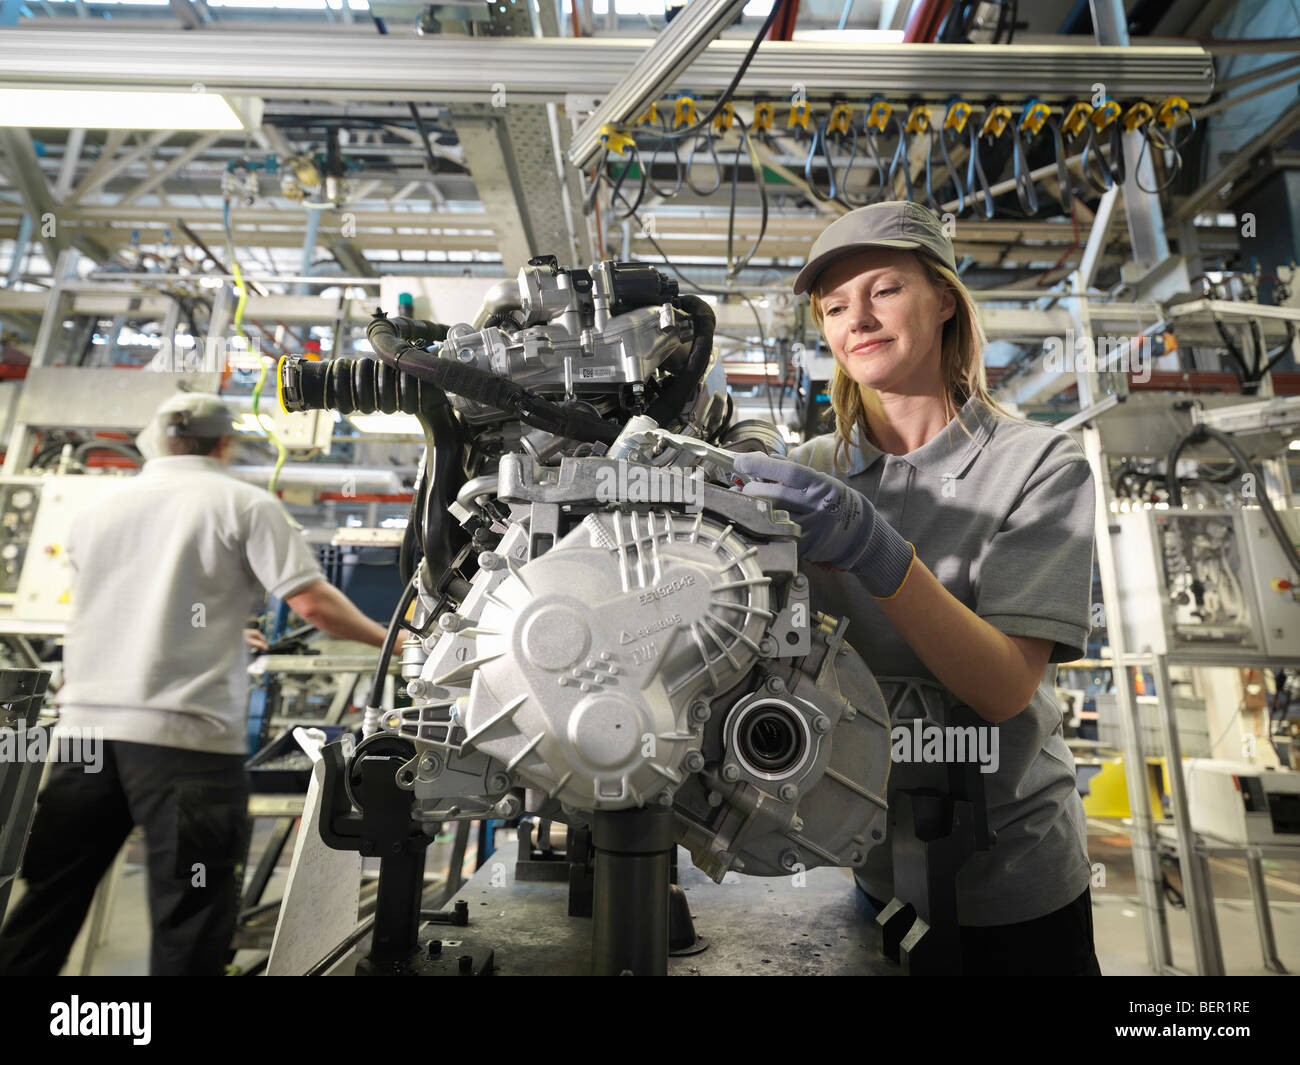 Car Workers Building Car Parts - Stock Image